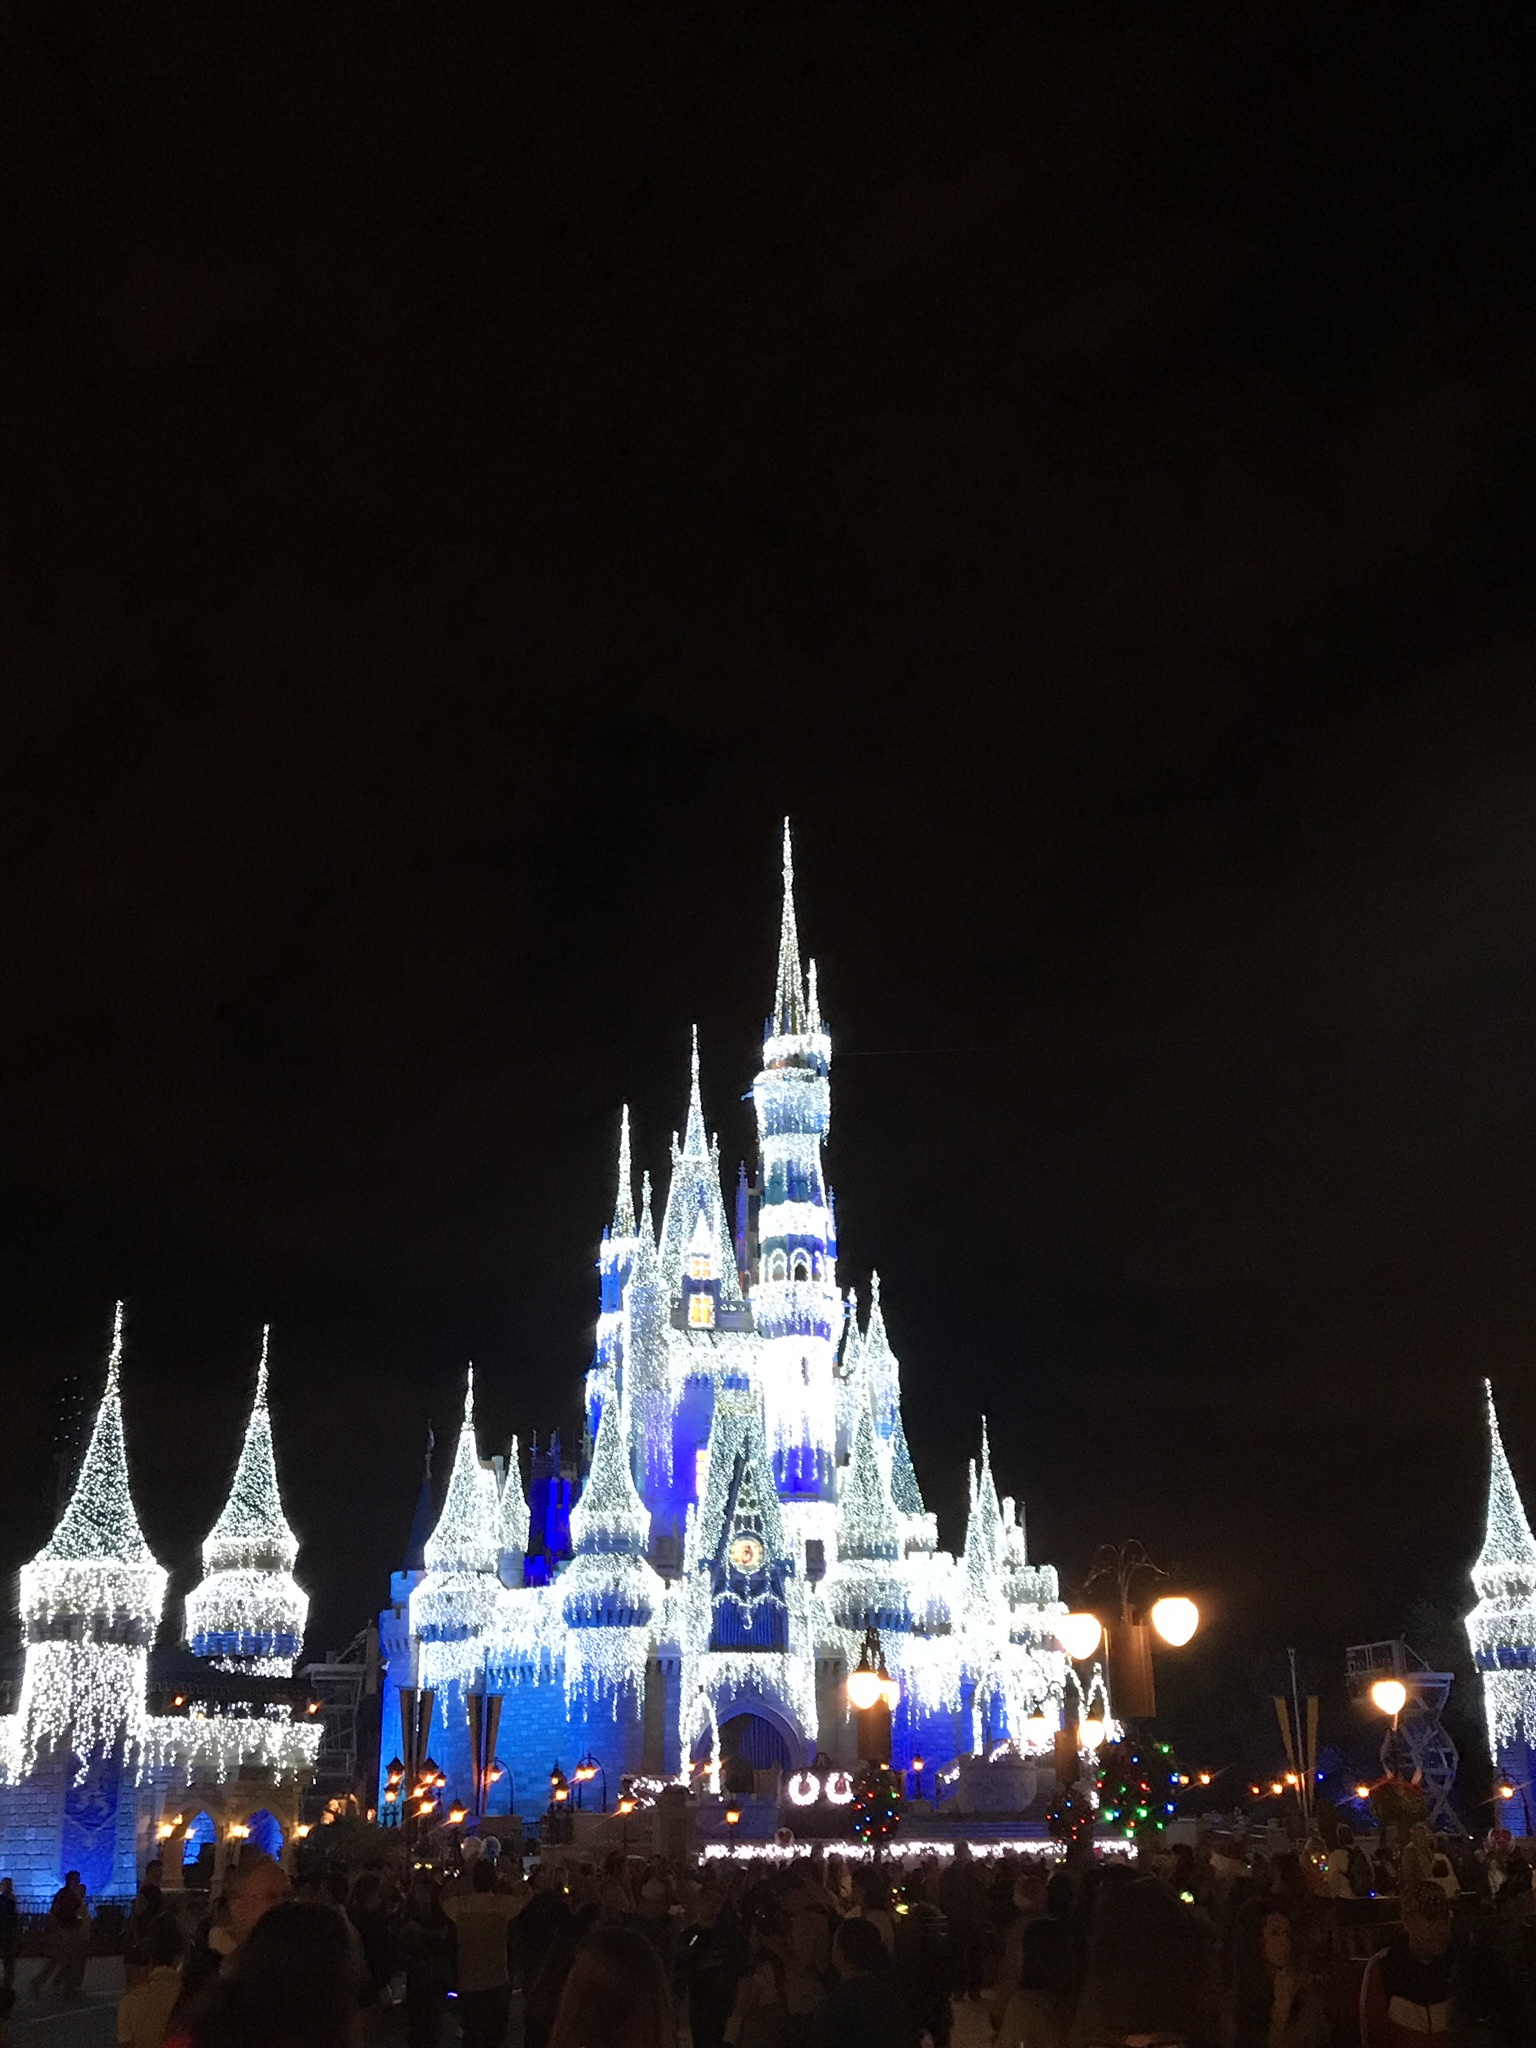 Cinderella's castle decorated for Christmas with the night sky background